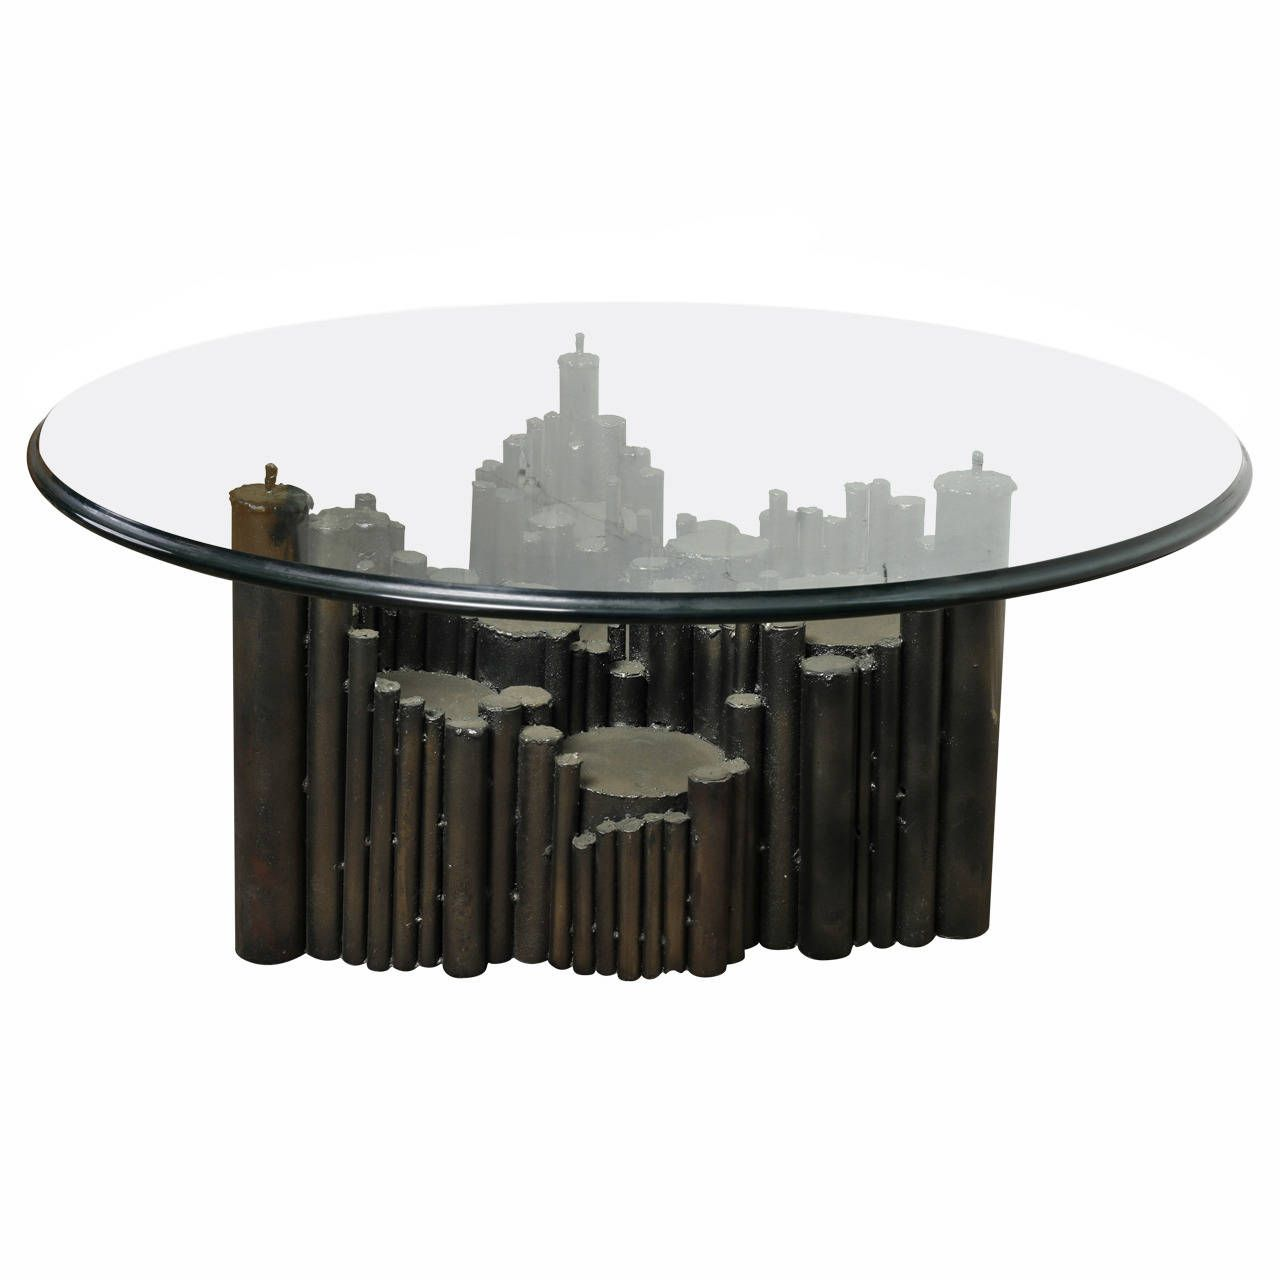 Brutalist Sculpted Steel Coffee Table In The Style Of Marcello Fantoni 1970s Coffee Table Steel Coffee Table Table